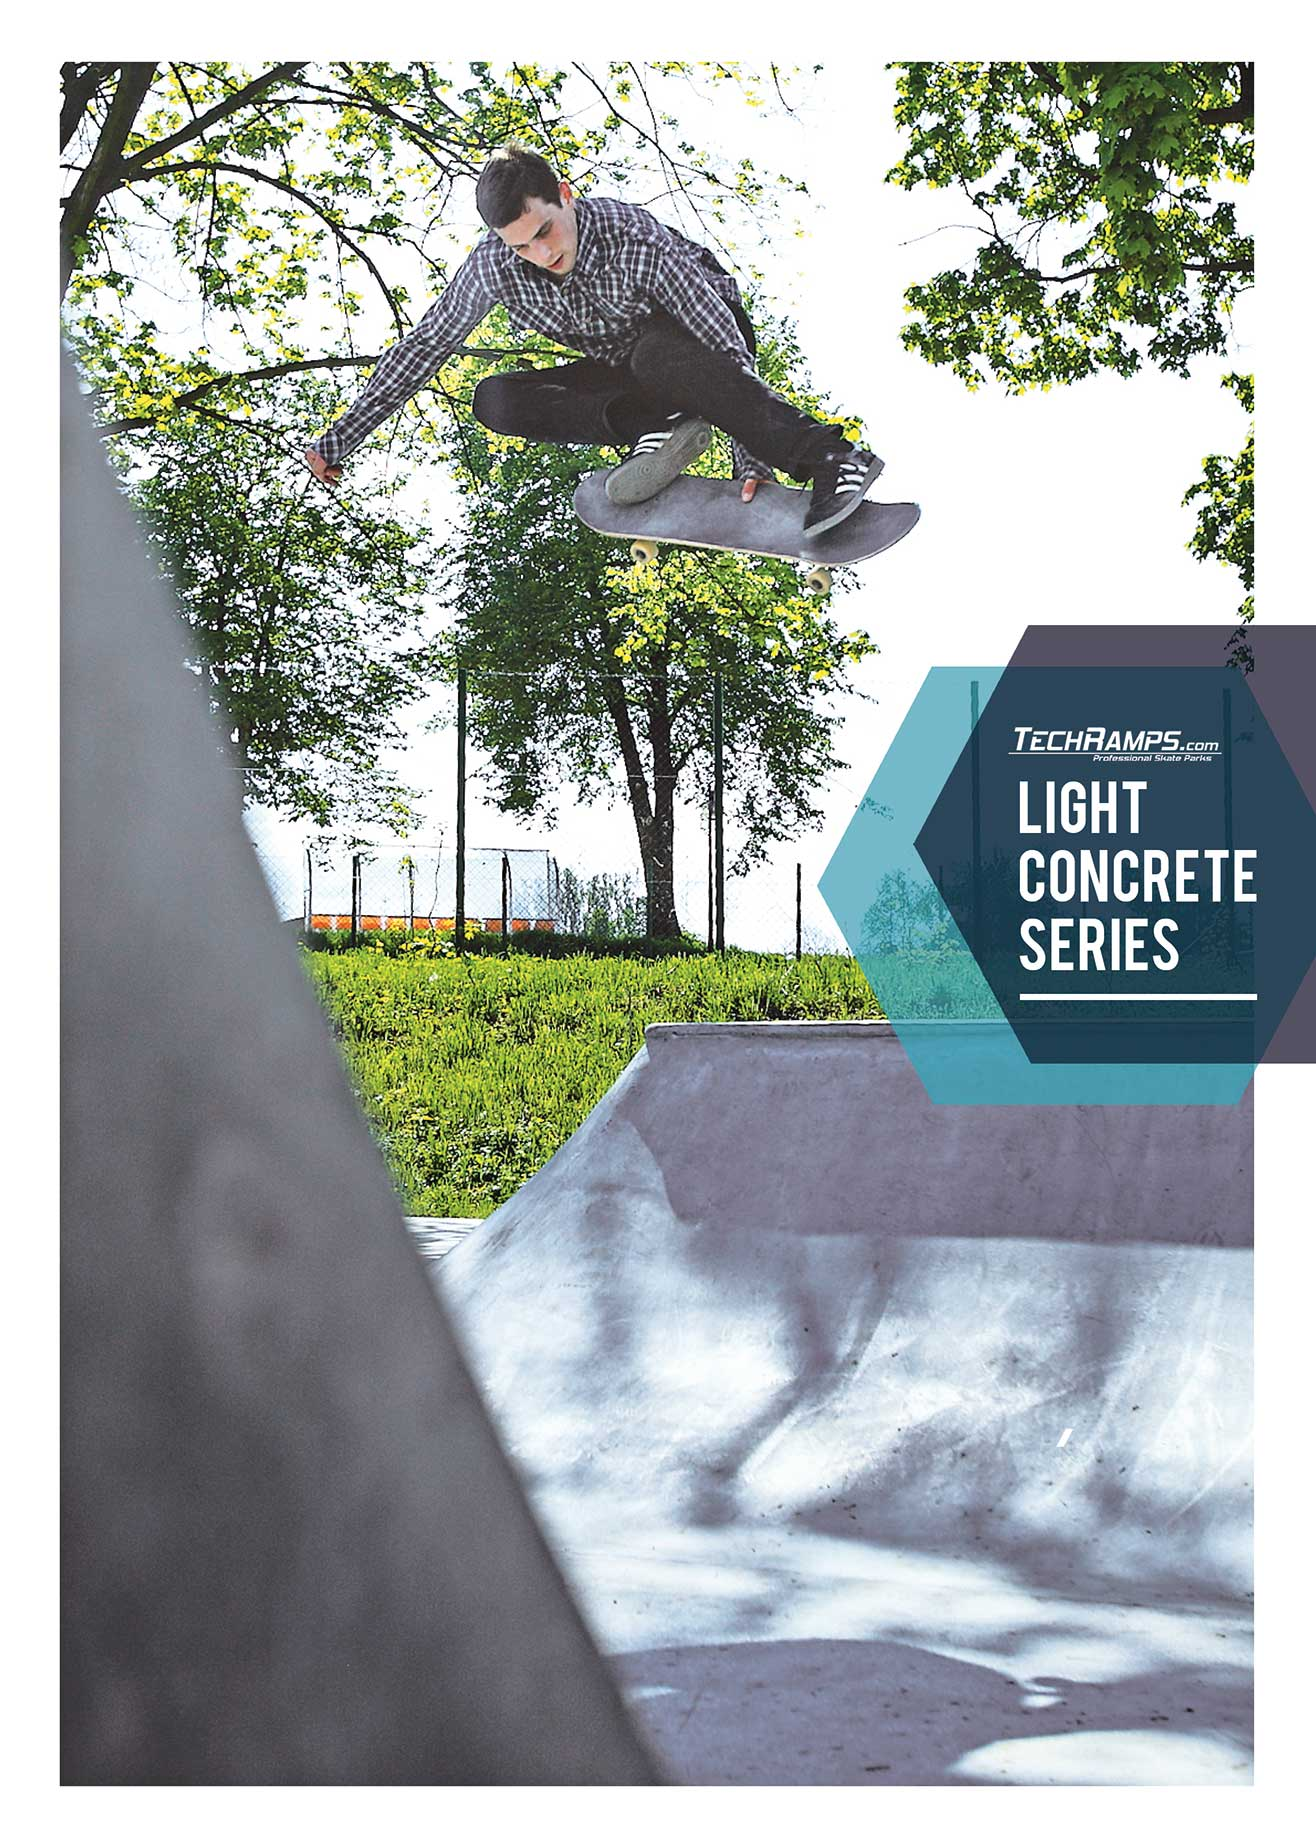 Techramps Light Concrete Series